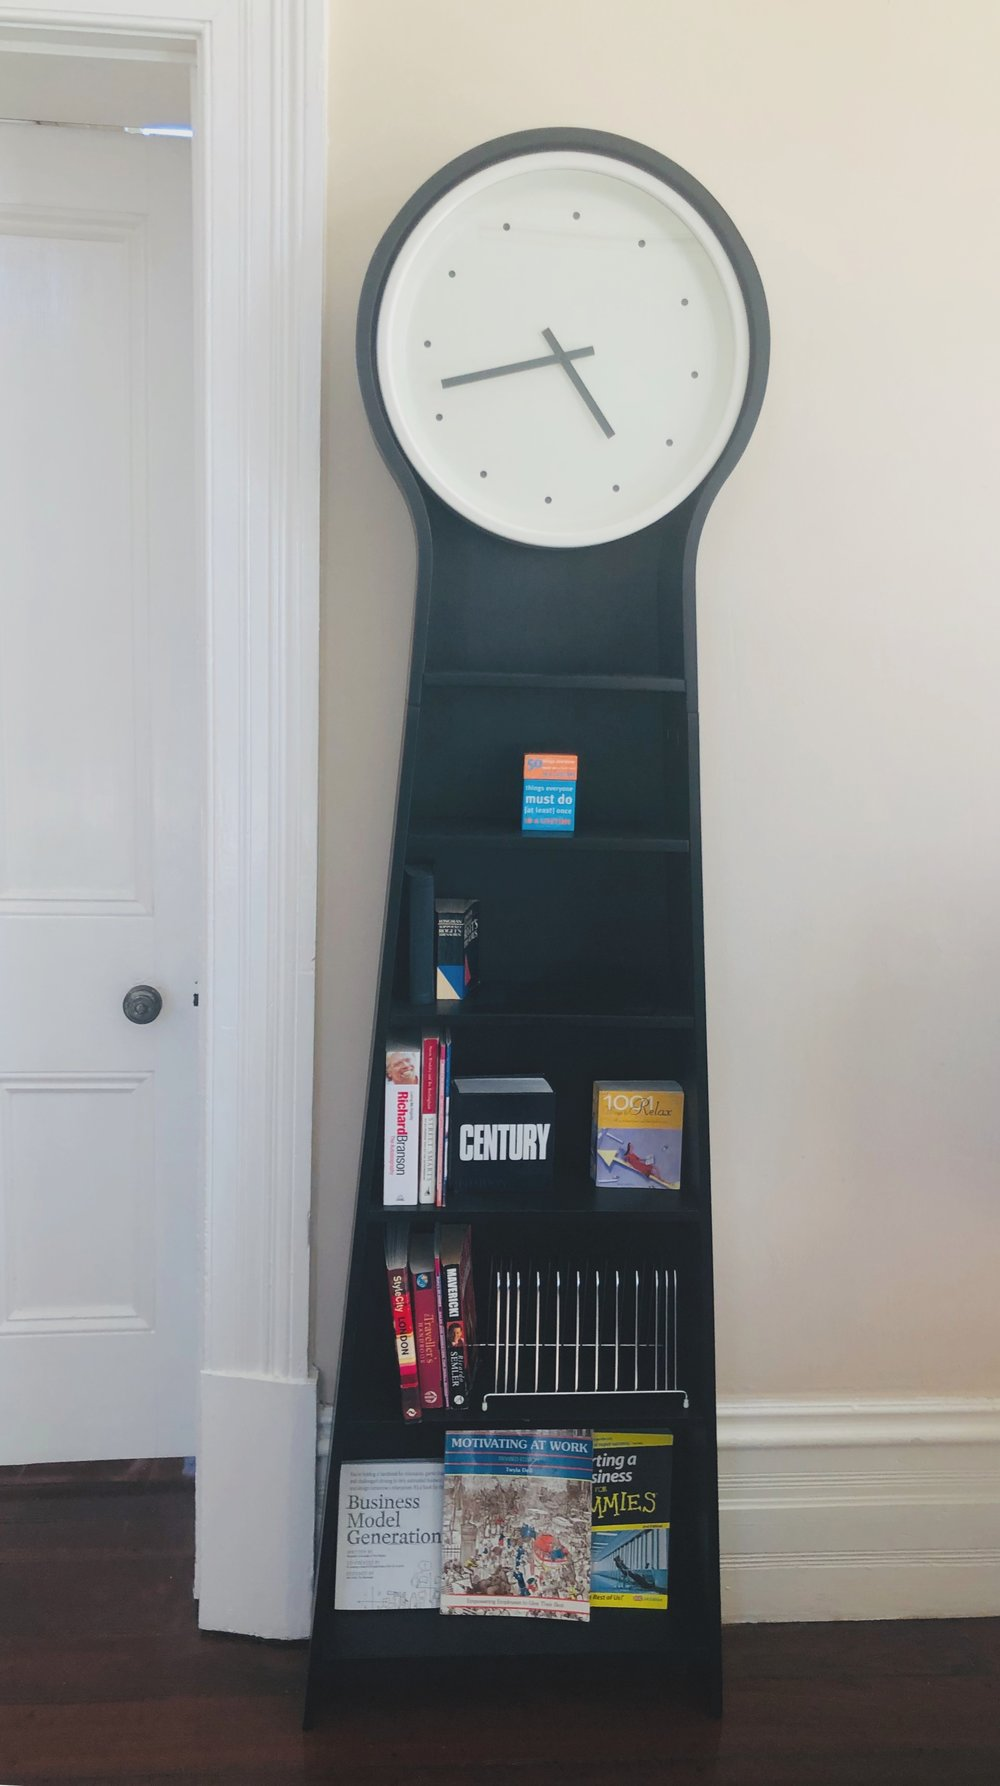 Clock in the co-working space